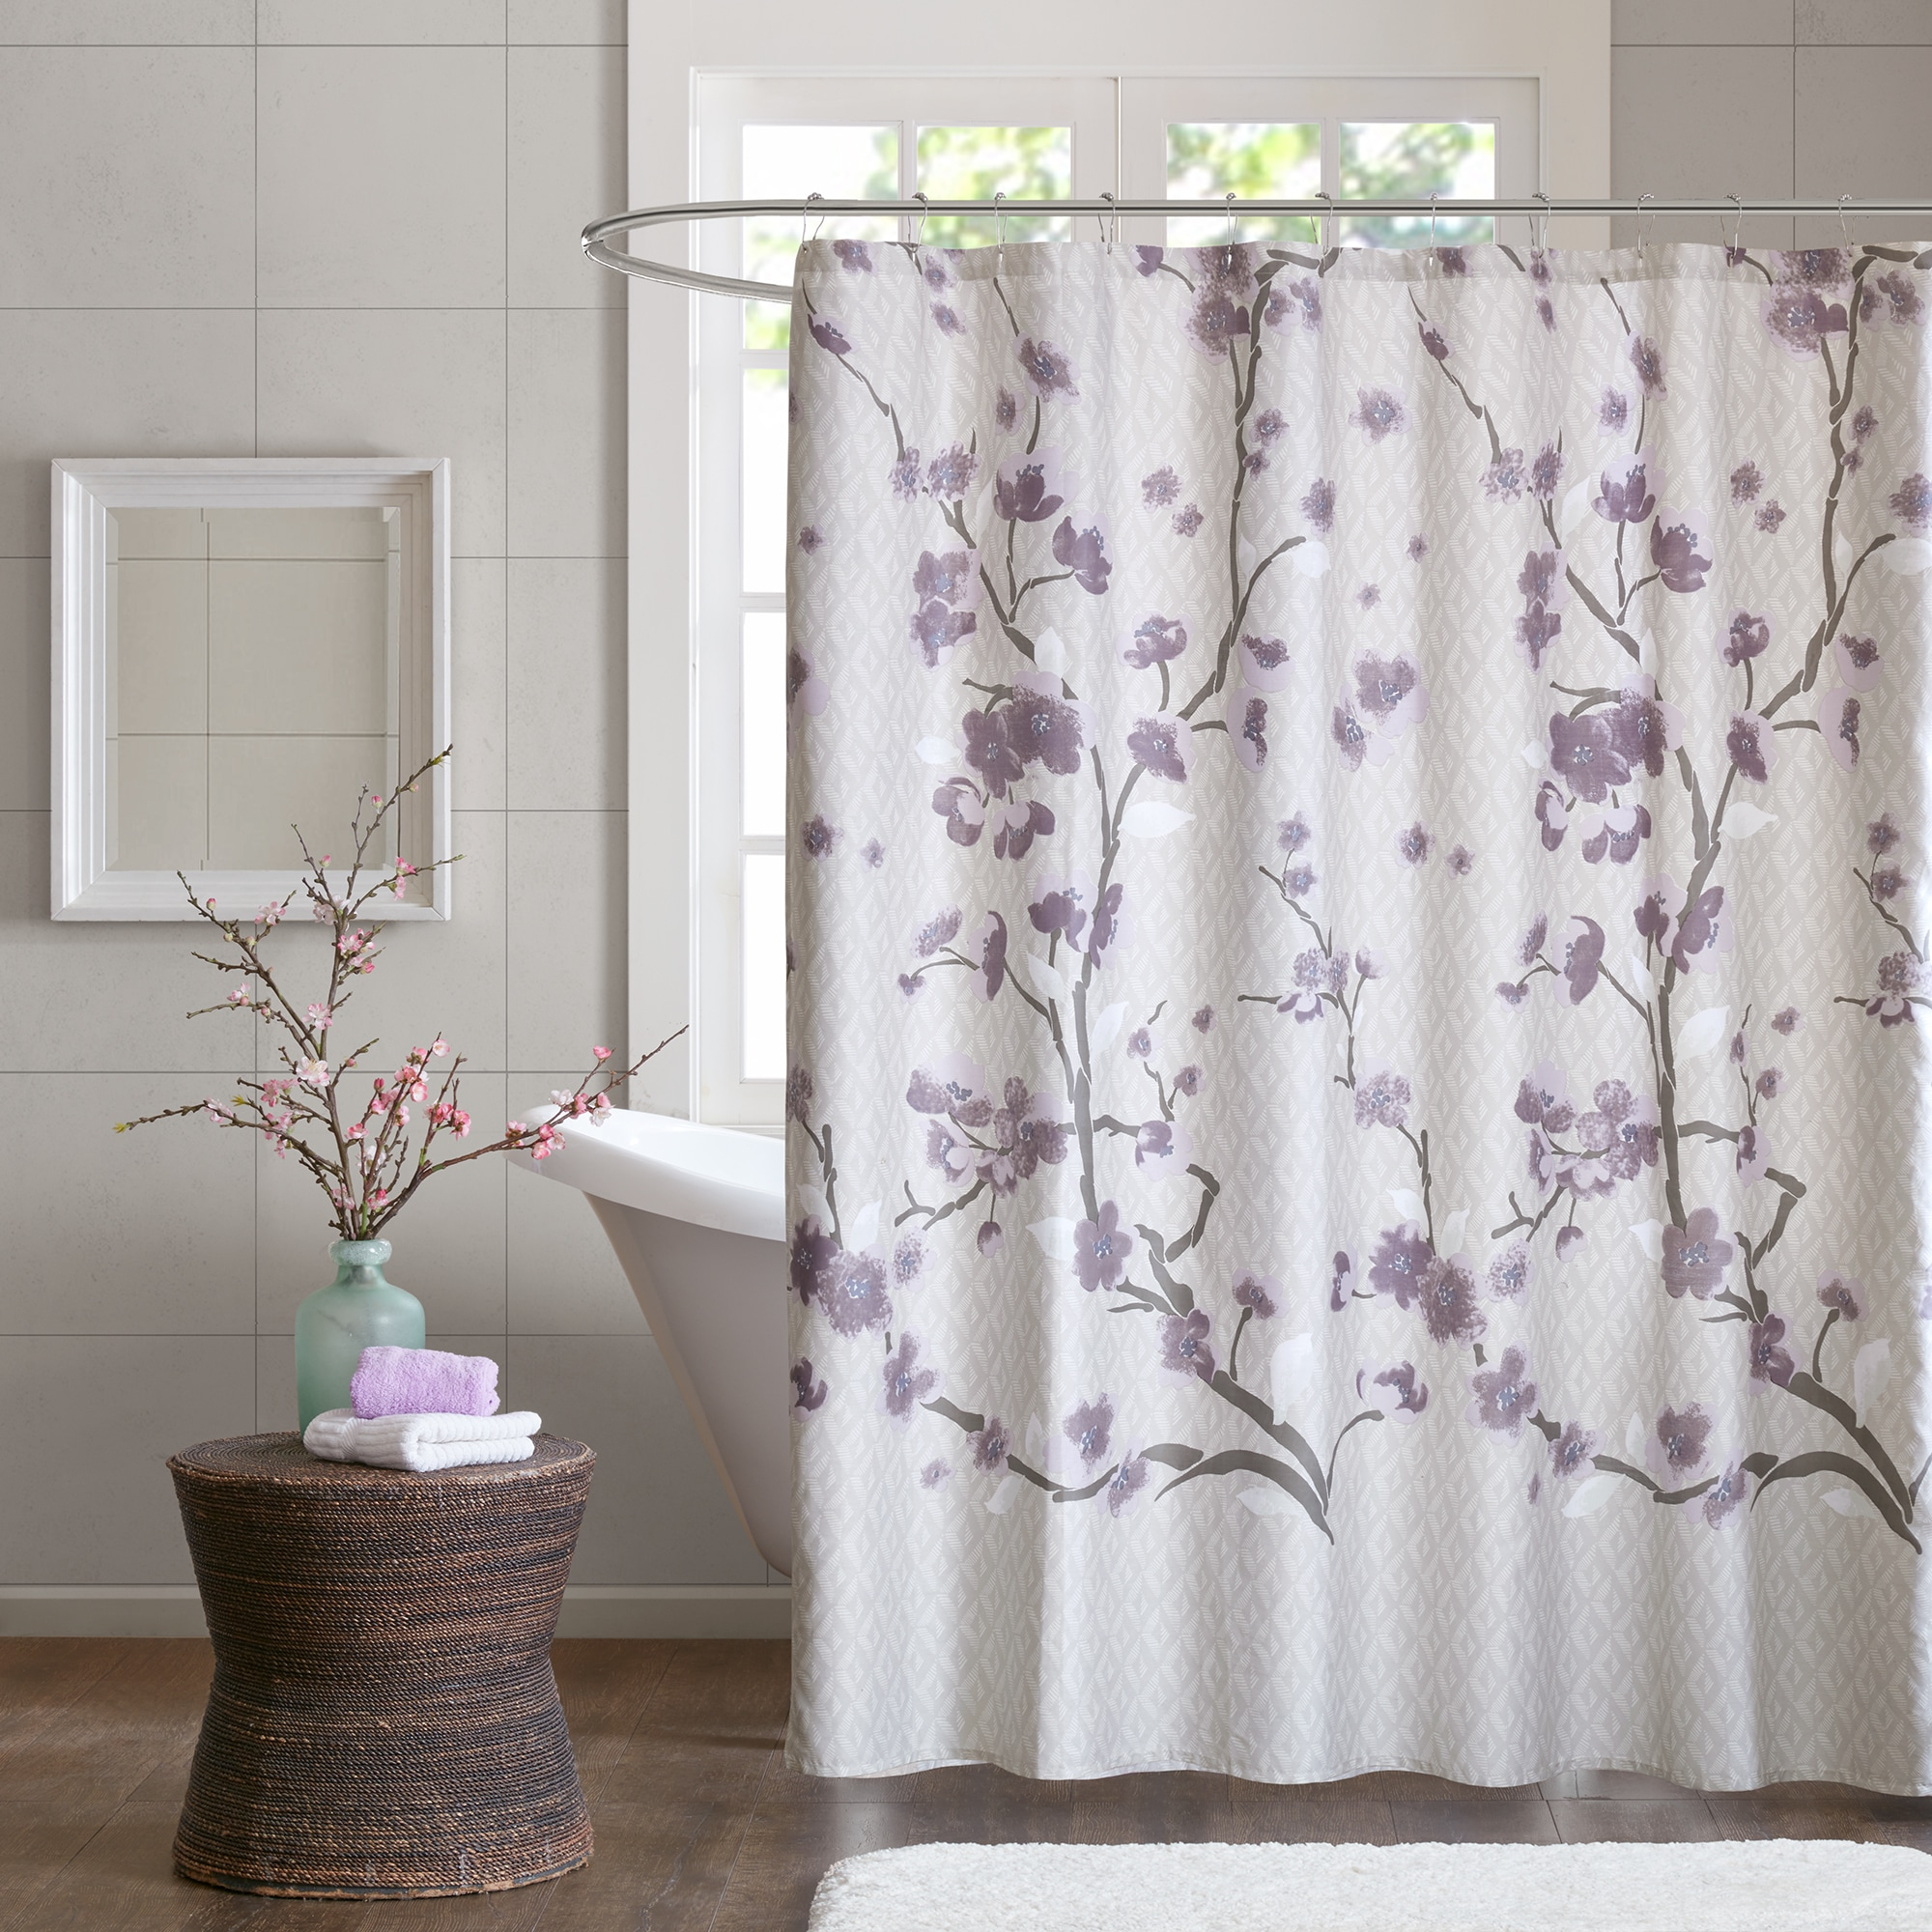 shop madison park isabella cotton printed purple shower curtain free shipping on orders over. Black Bedroom Furniture Sets. Home Design Ideas